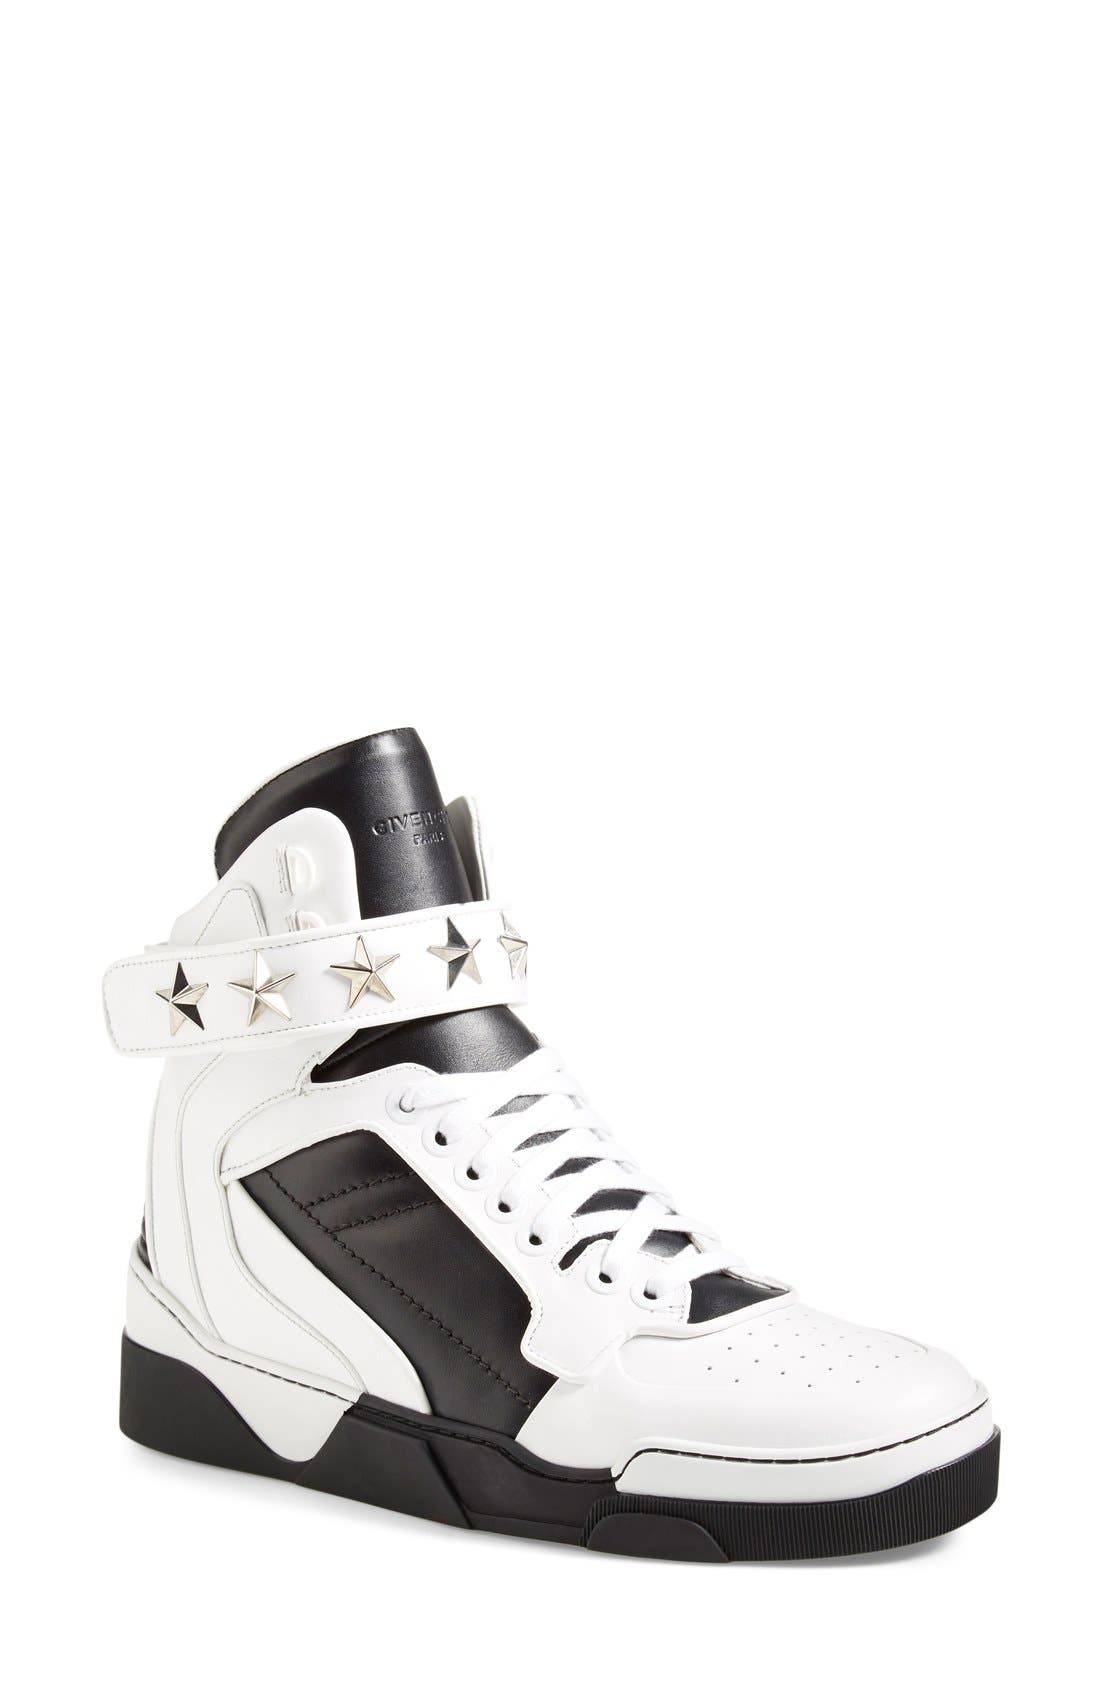 'Tyson' High Top Sneaker,                             Main thumbnail 2, color,